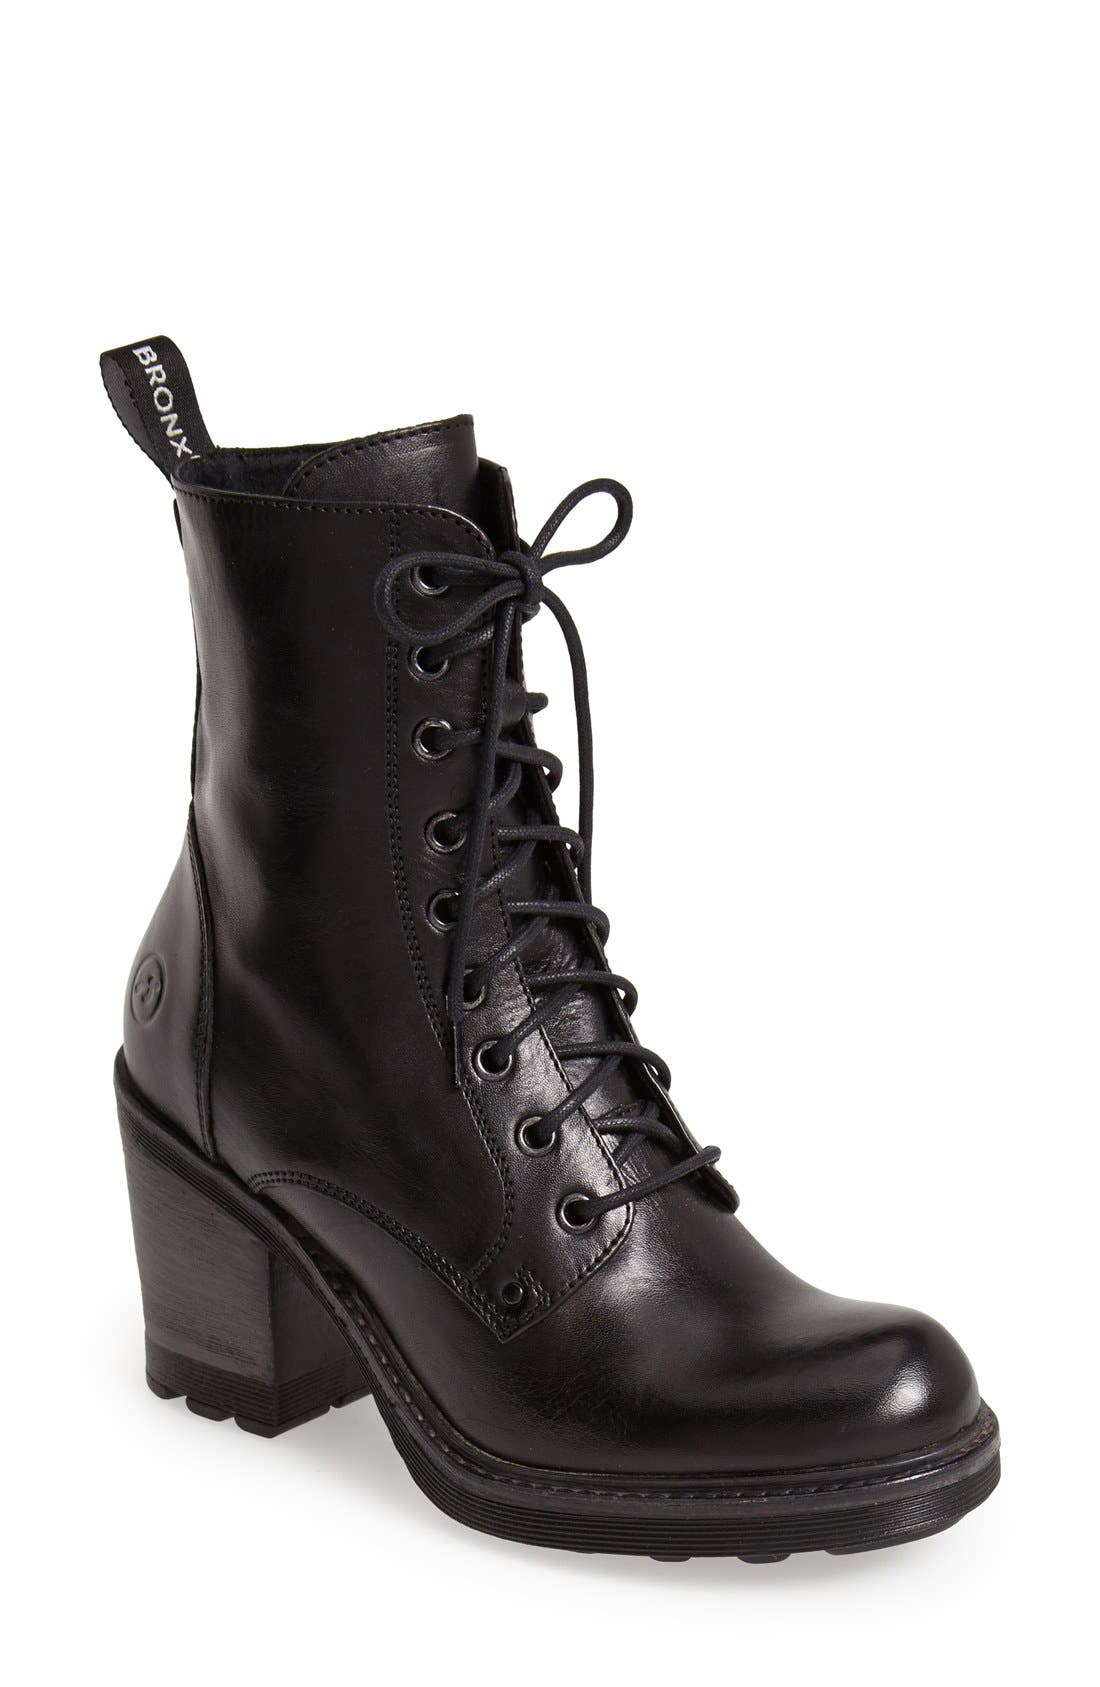 Main Image - BRONX USA 'Here N Now' Leather Bootie (Women)